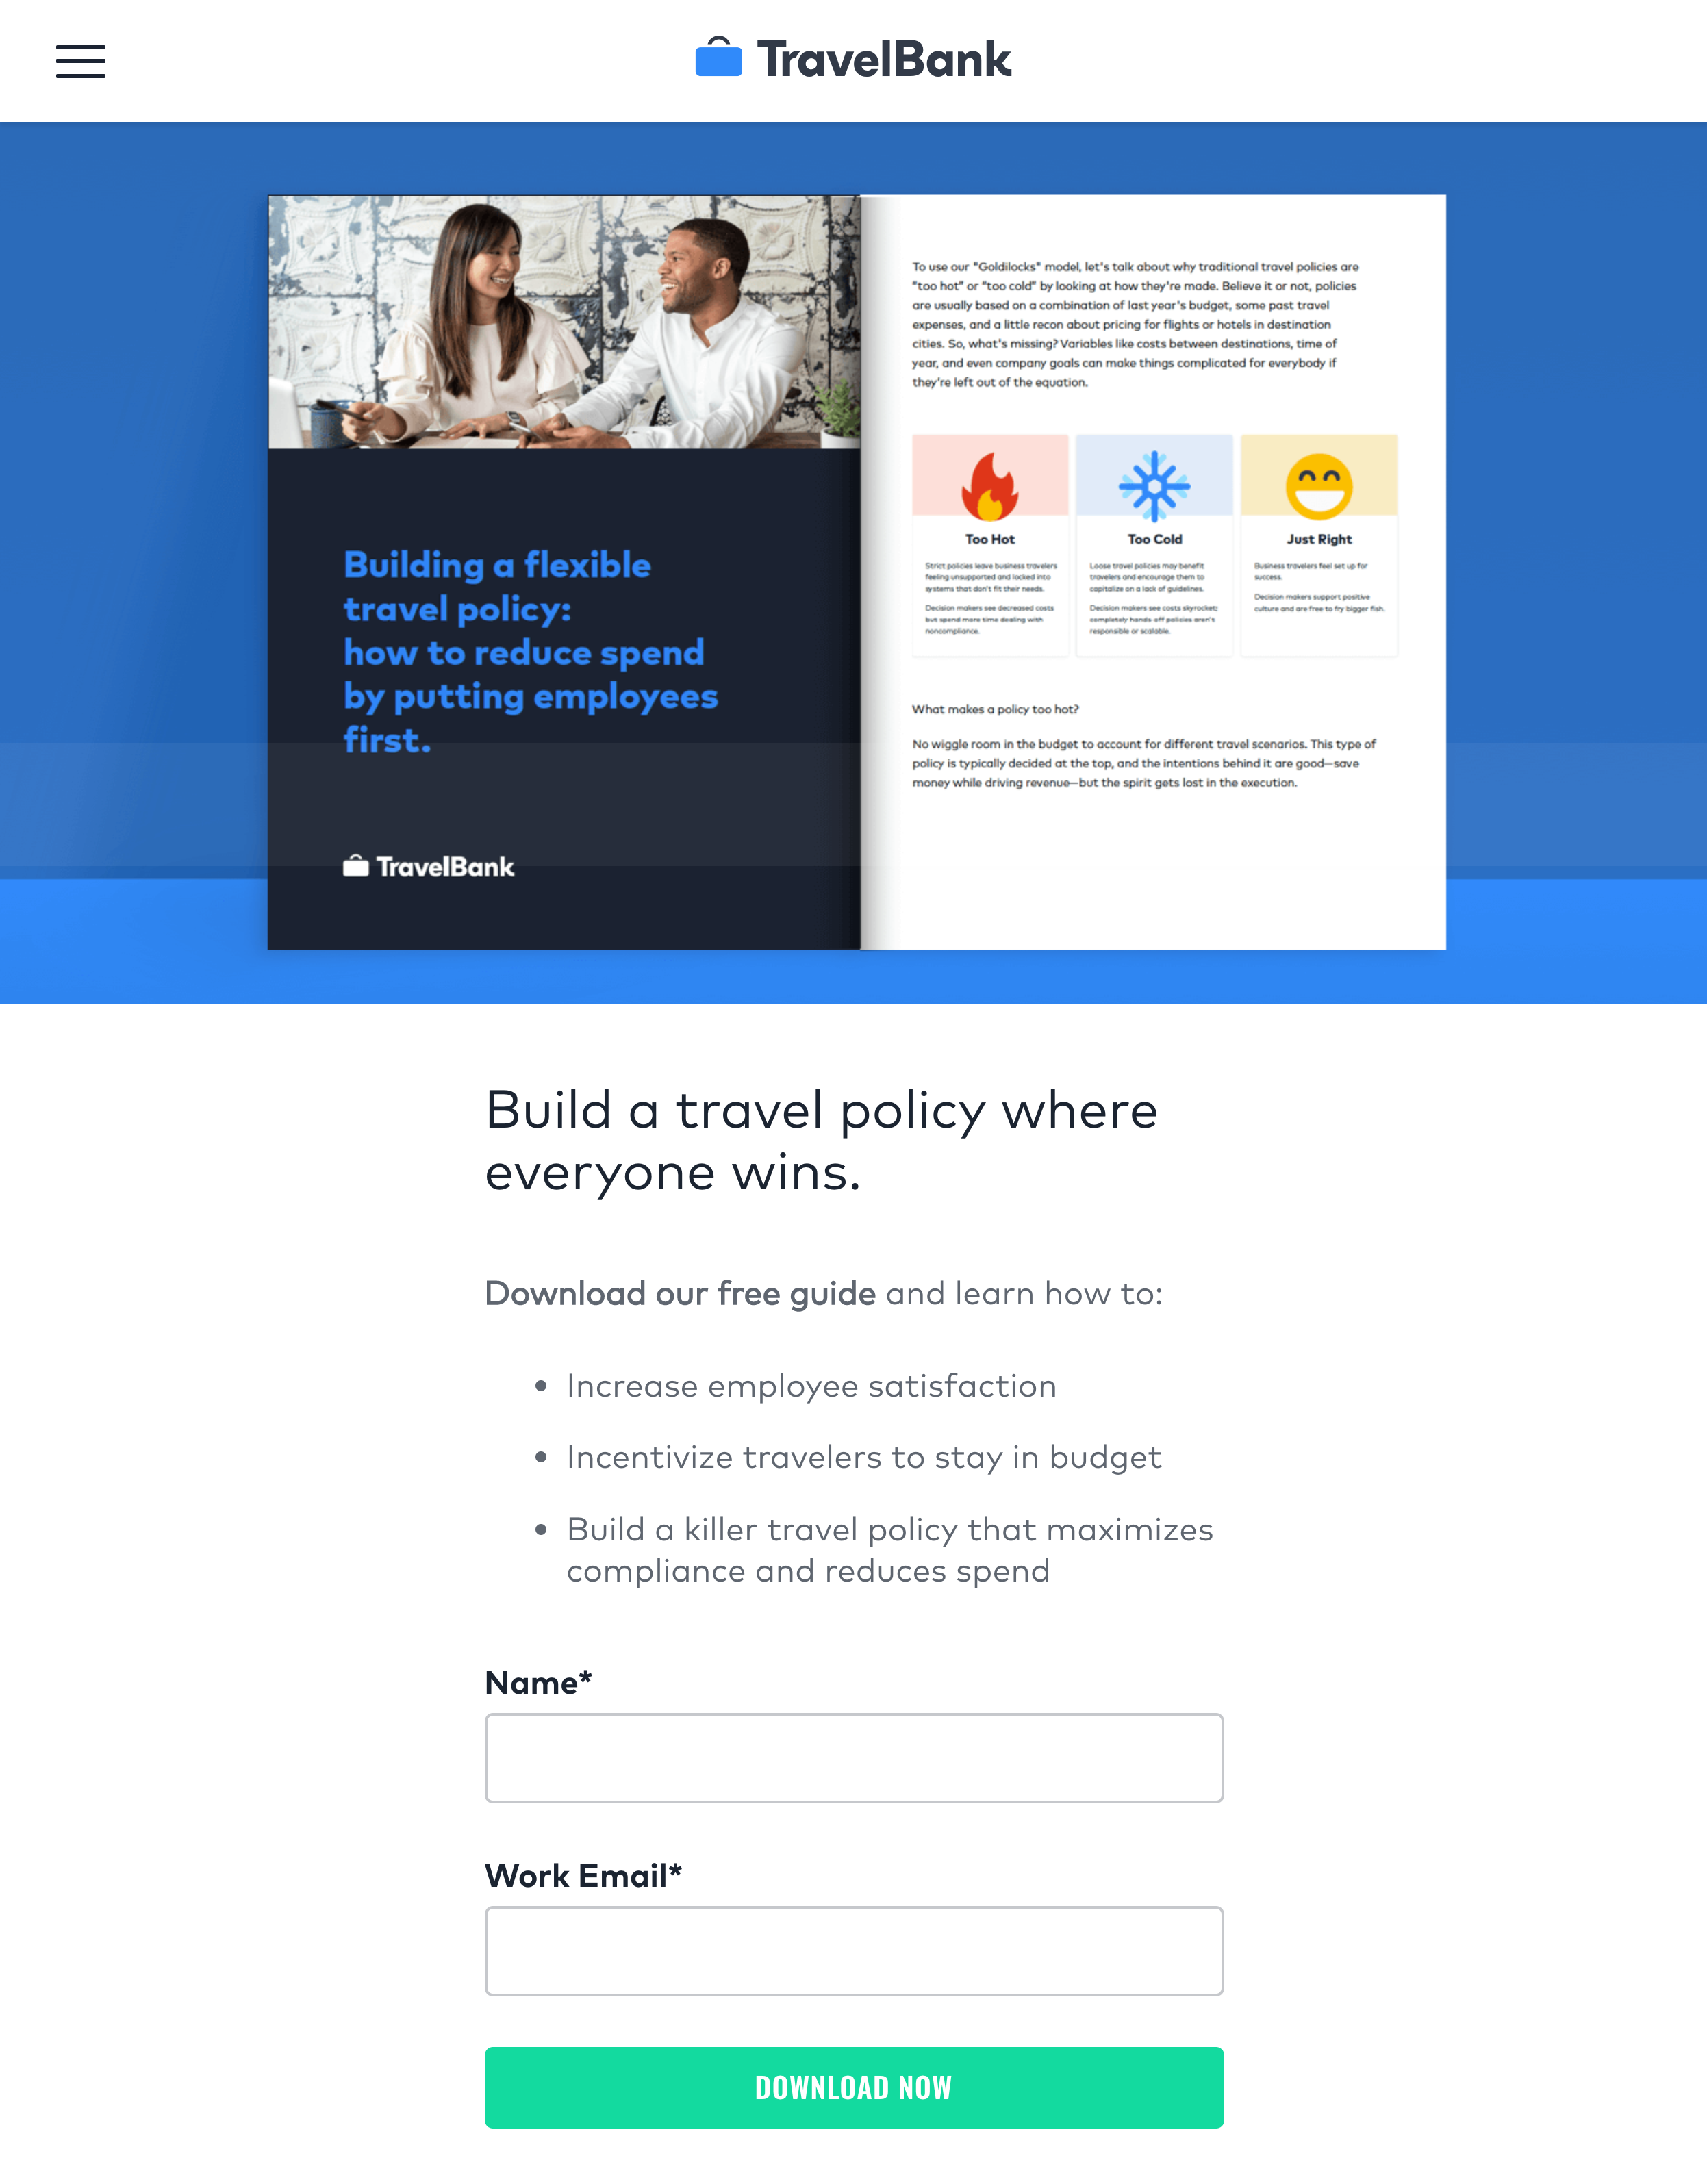 Content and promotion for TravelBank's first ever long-form/DLC content campaign: a 13-page guide to improving internal travel policies, including landing page and social ads.